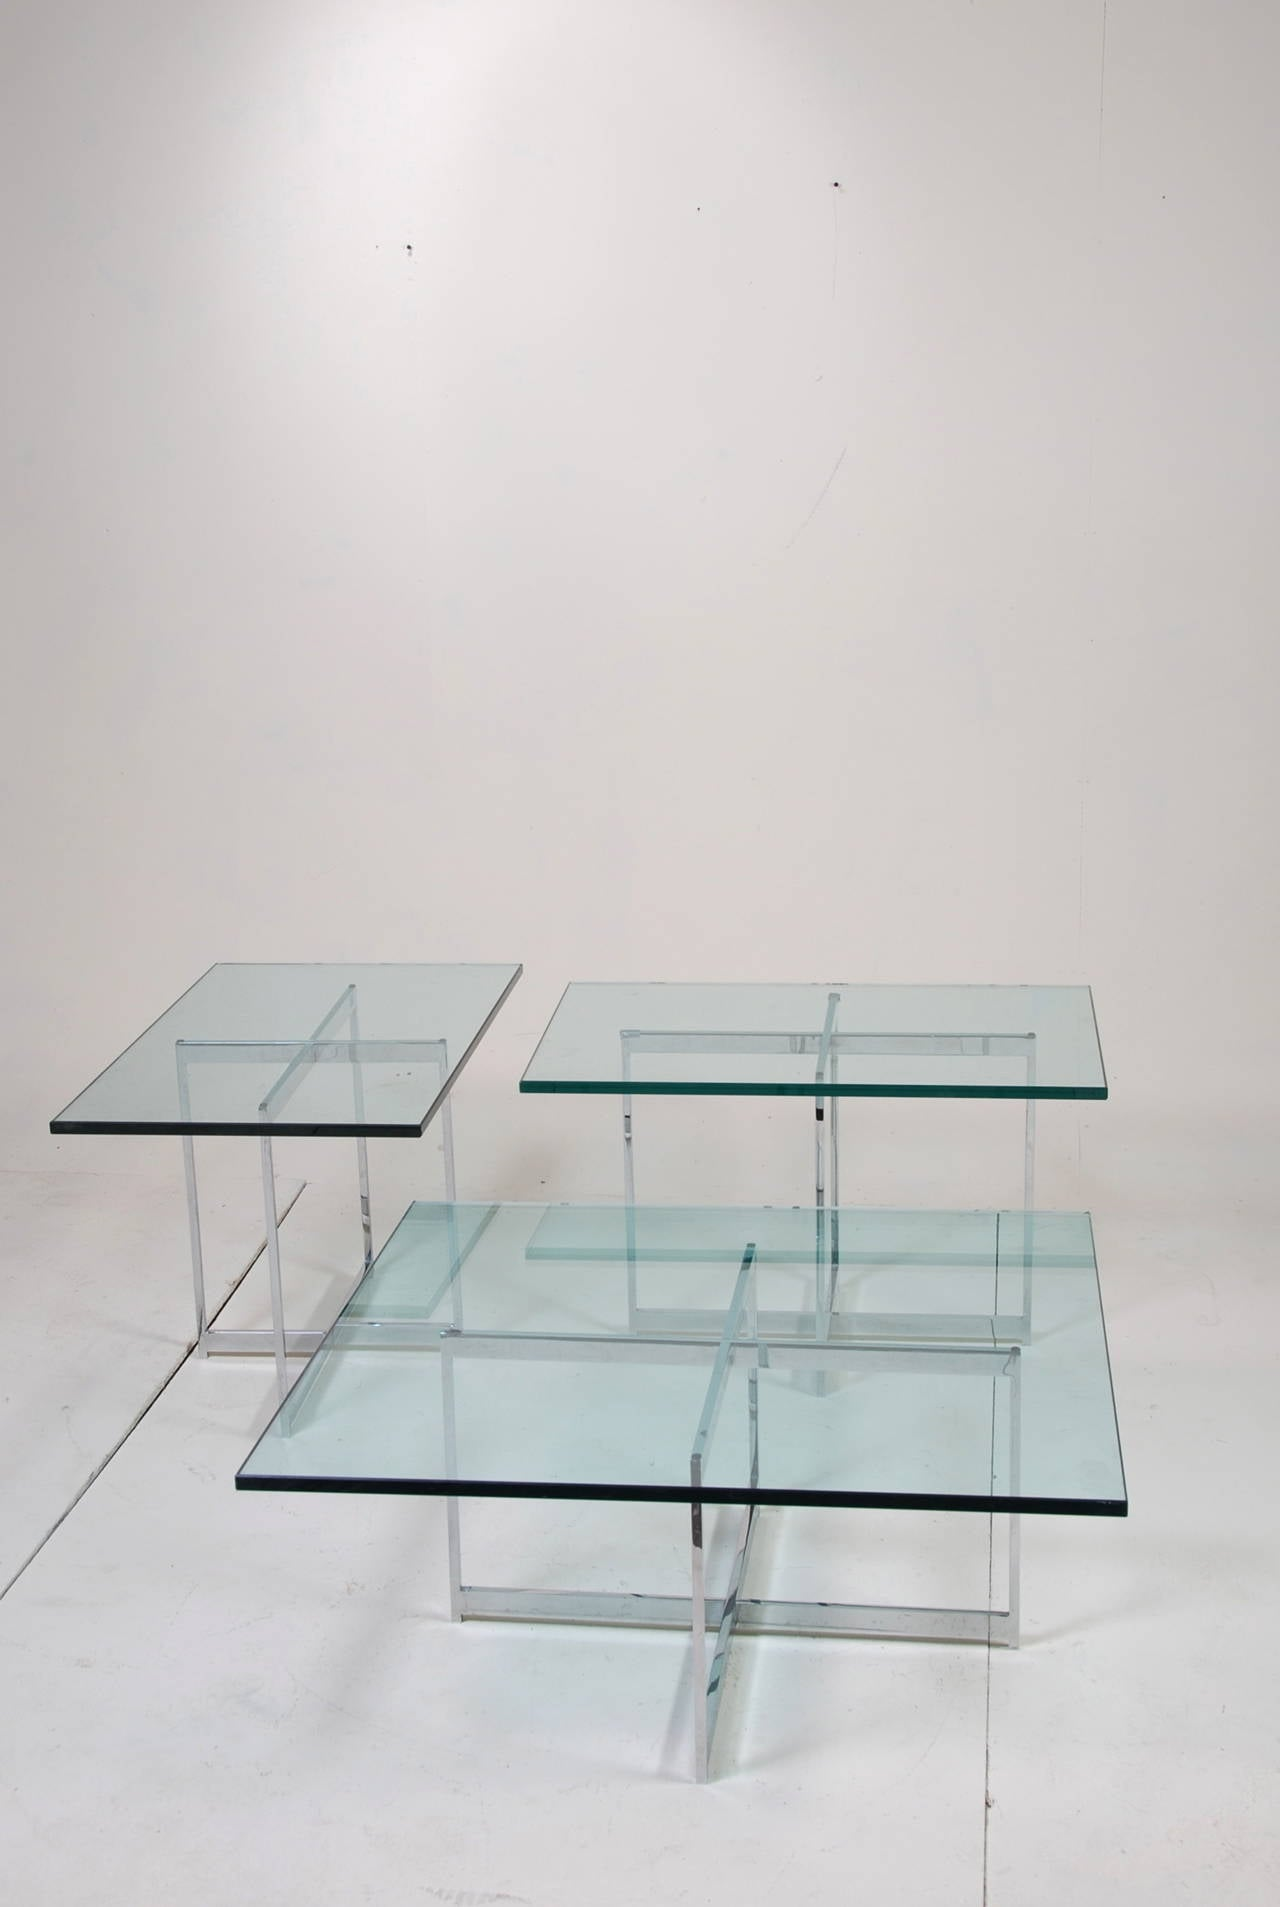 mies van der rohe style stainless steel glass table set for sale  - mies van der rohe style stainless steel glass table set